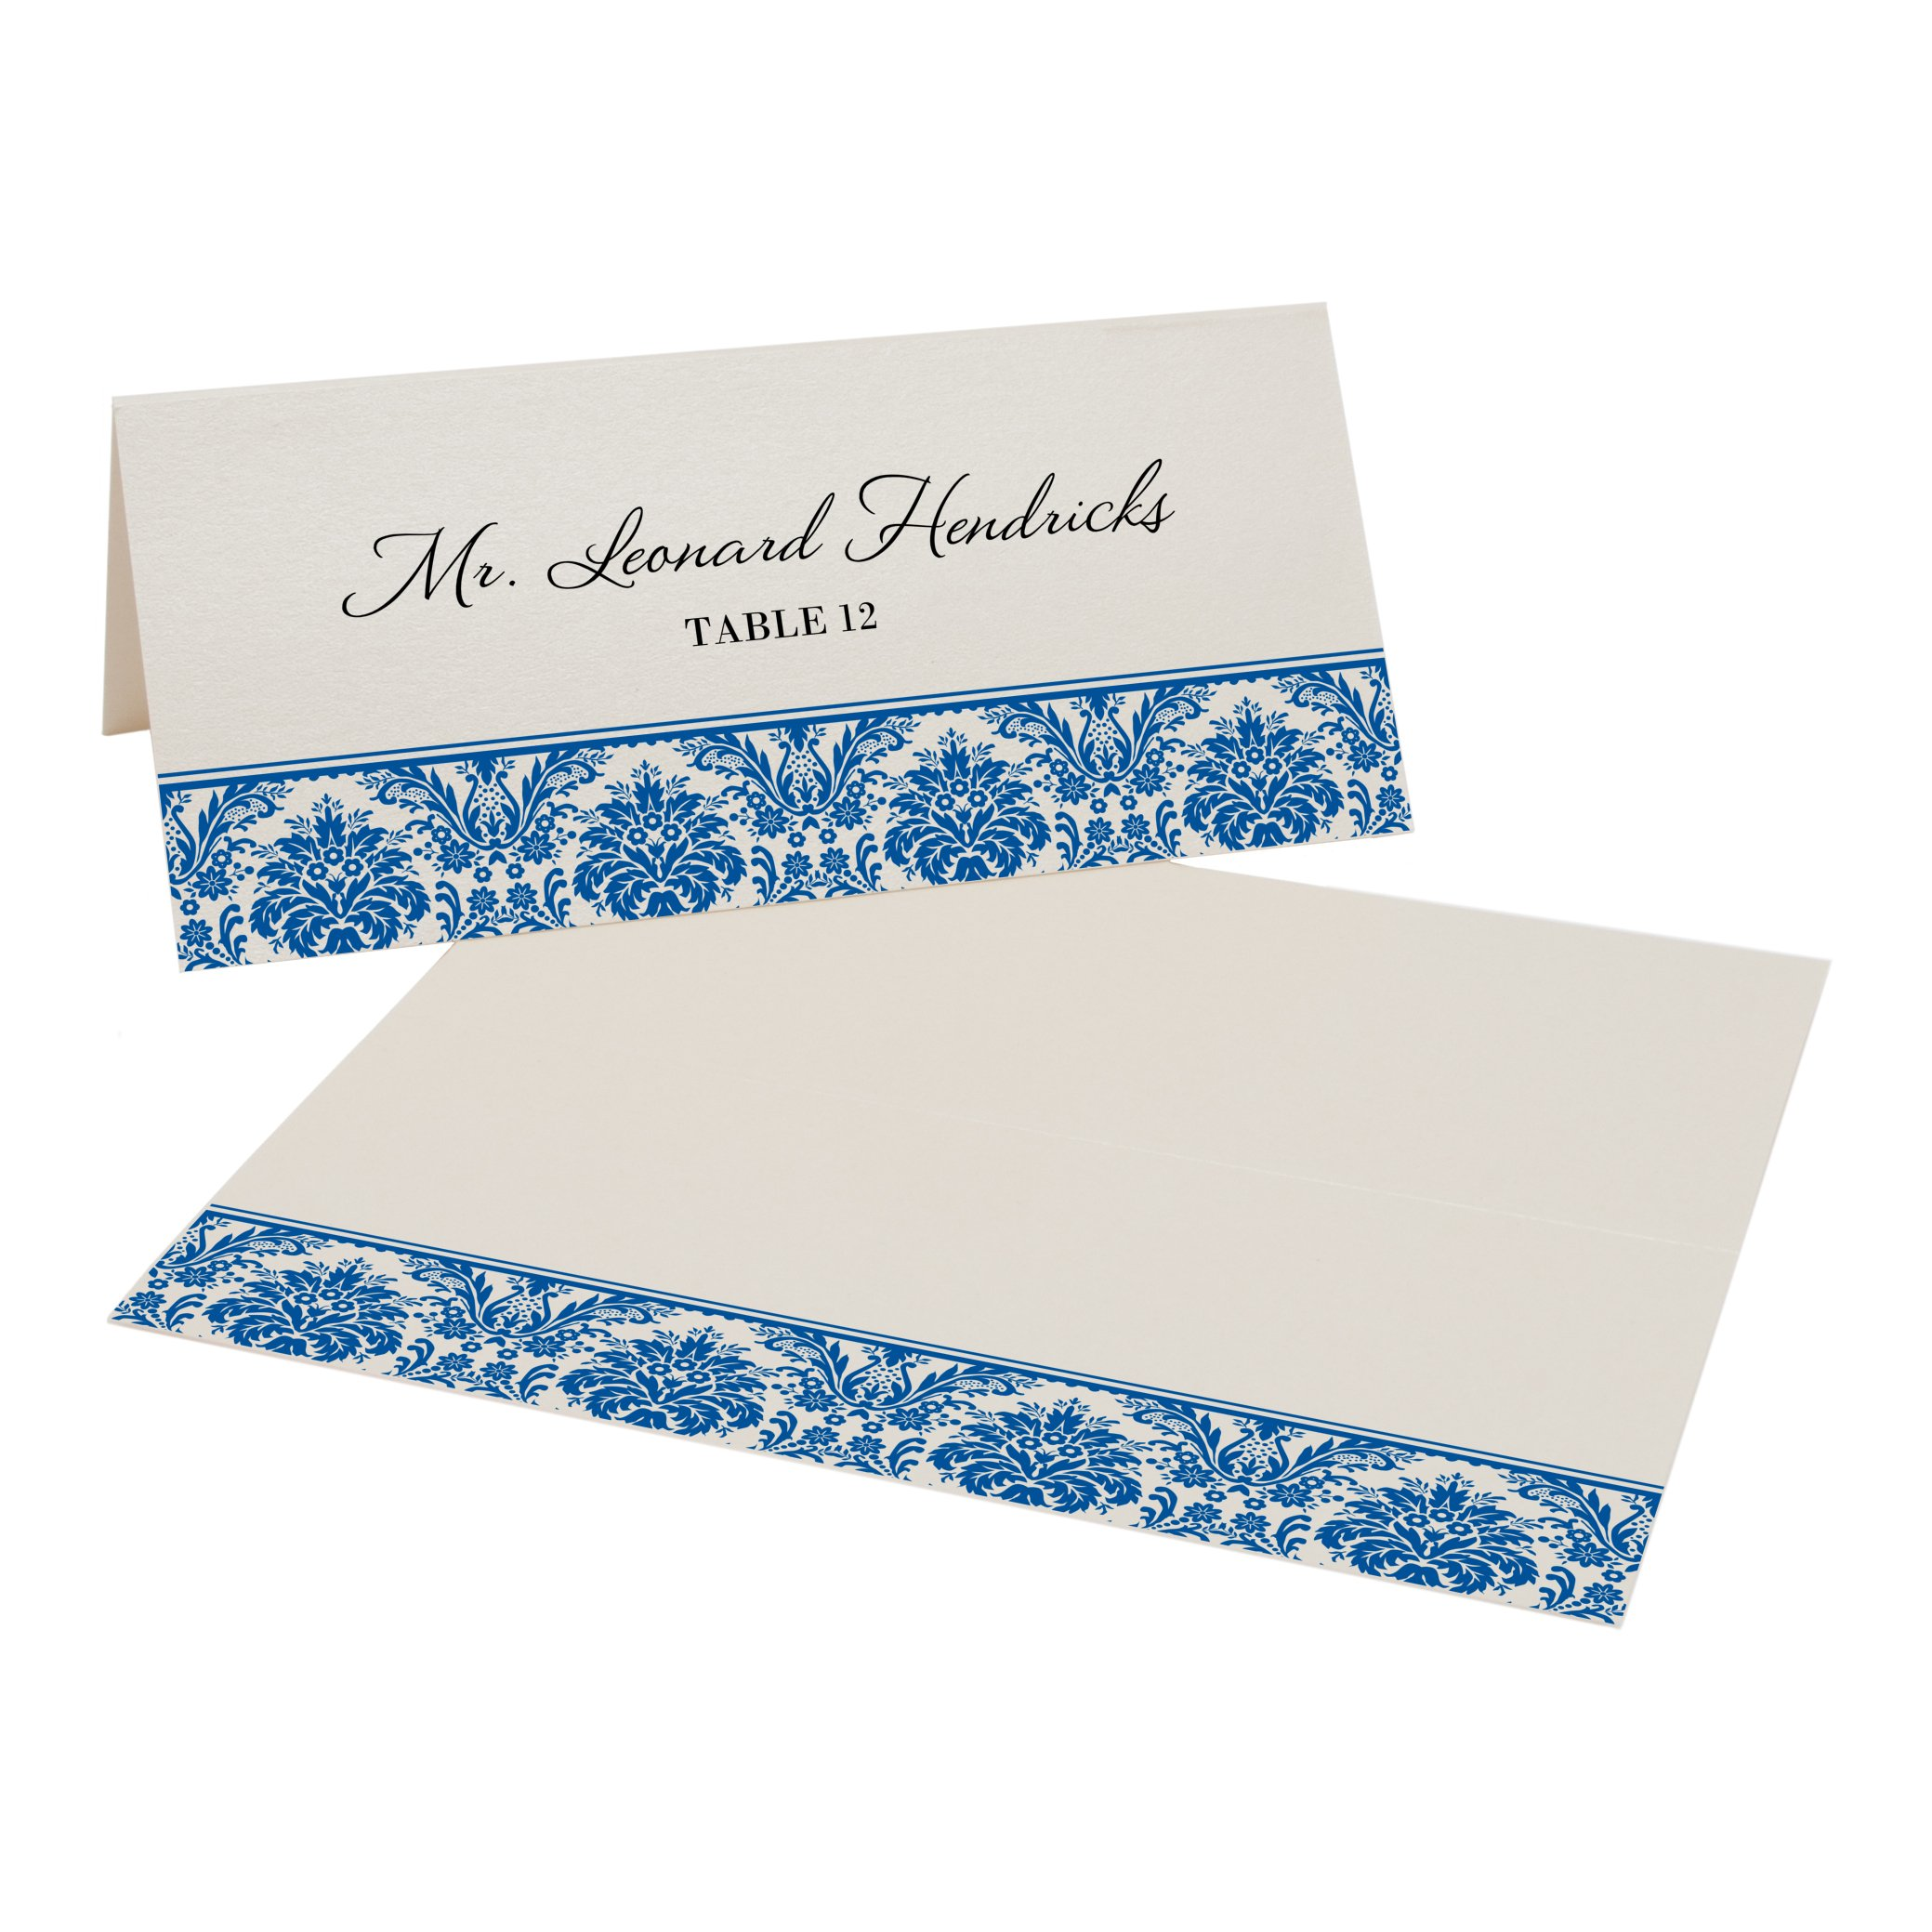 Damask Pattern Place Cards, Champagne, Royal Blue, Set of 375 by Documents and Designs